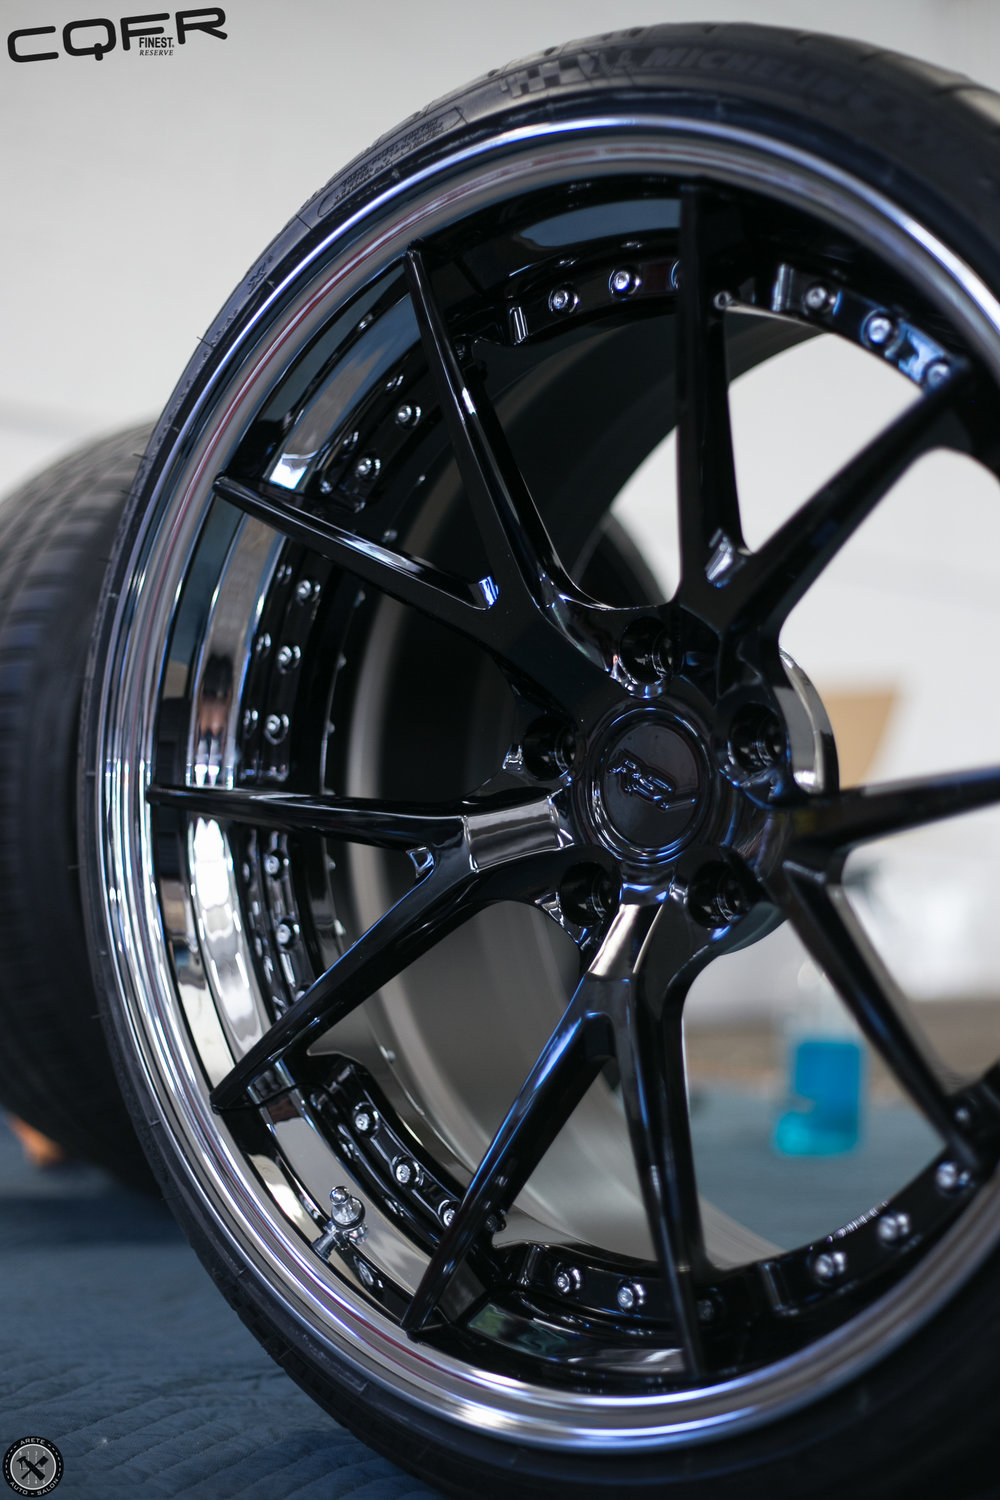 M3's are notorious for producing brake dust, now that the complete wheel is covered in Finest Reserve, cleaing and maintaing the wheels will be a breeze.